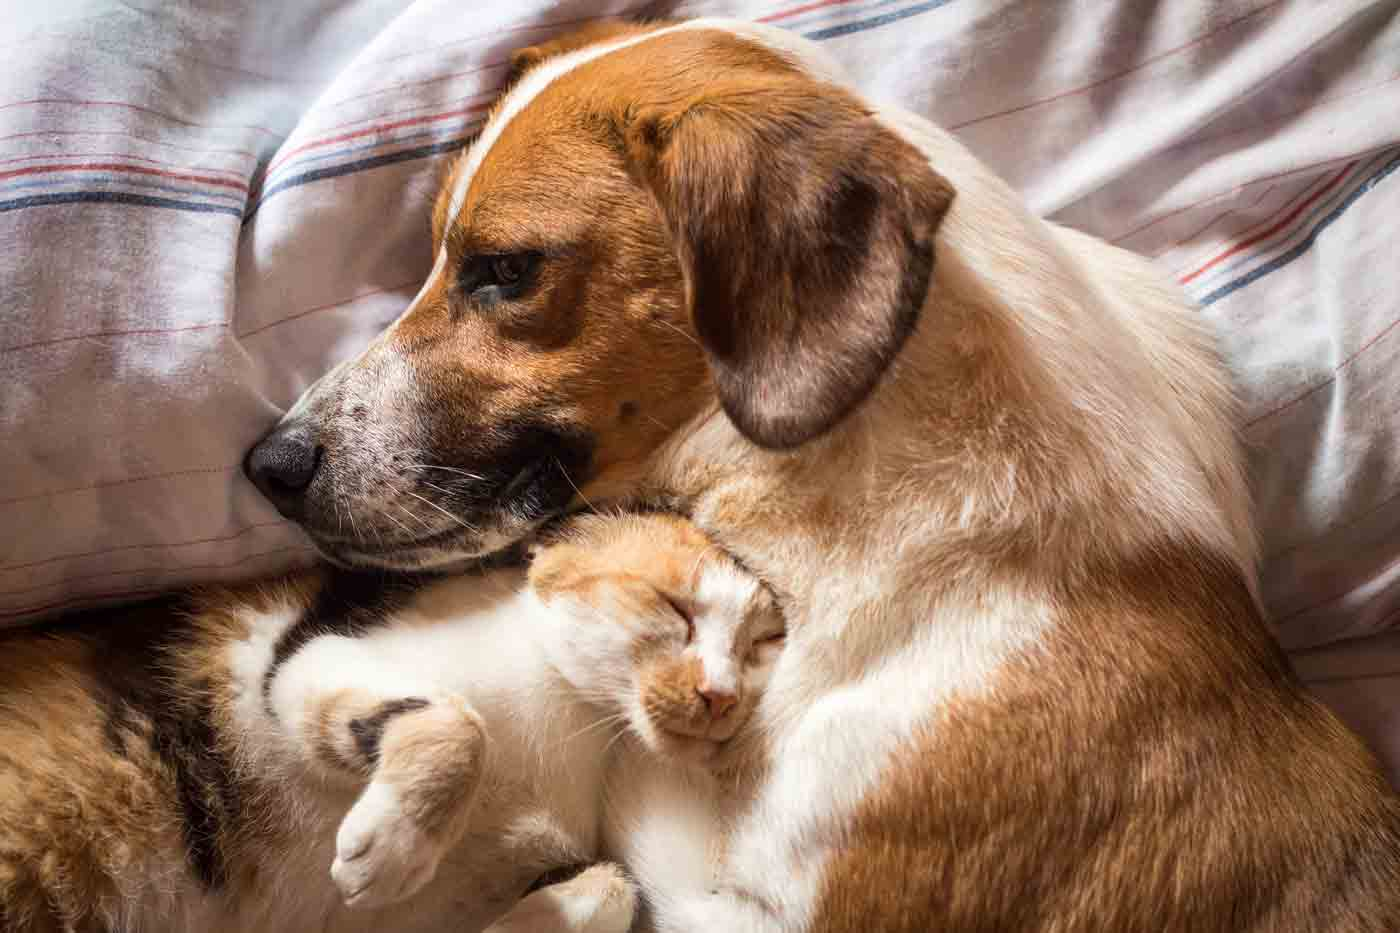 a cat cuddling with a dog laying on a bed